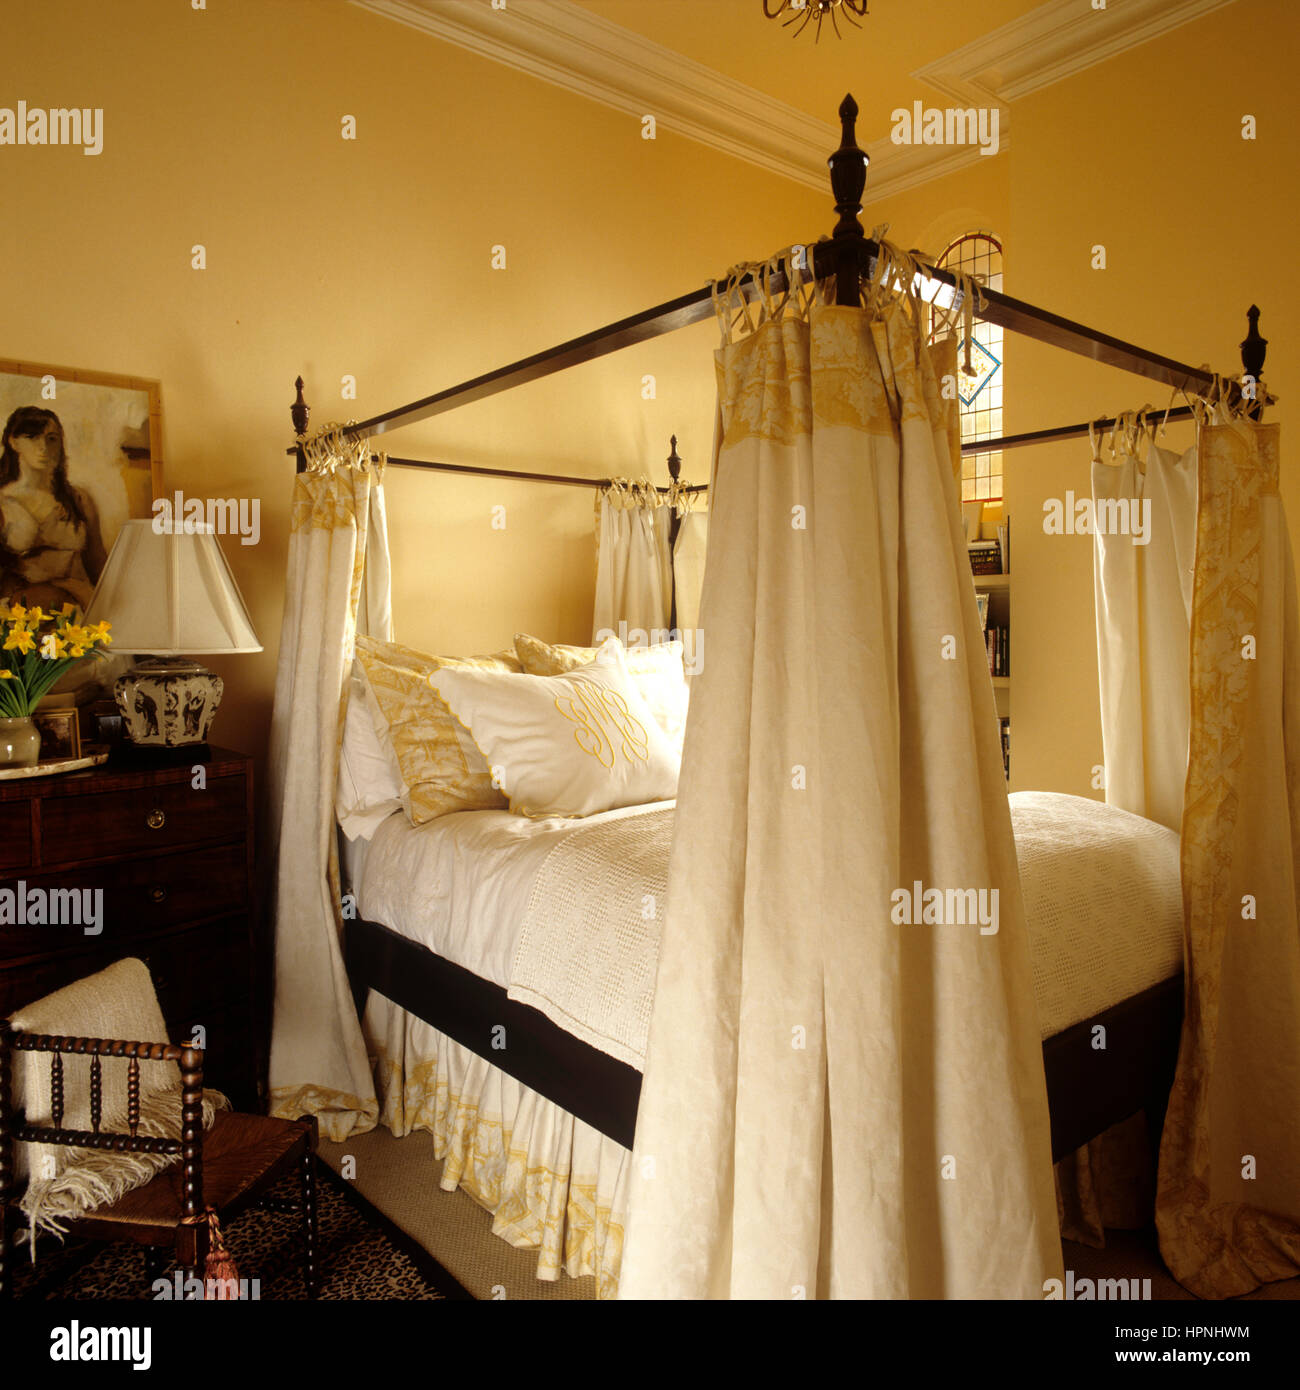 A four poster bed. - Stock Image